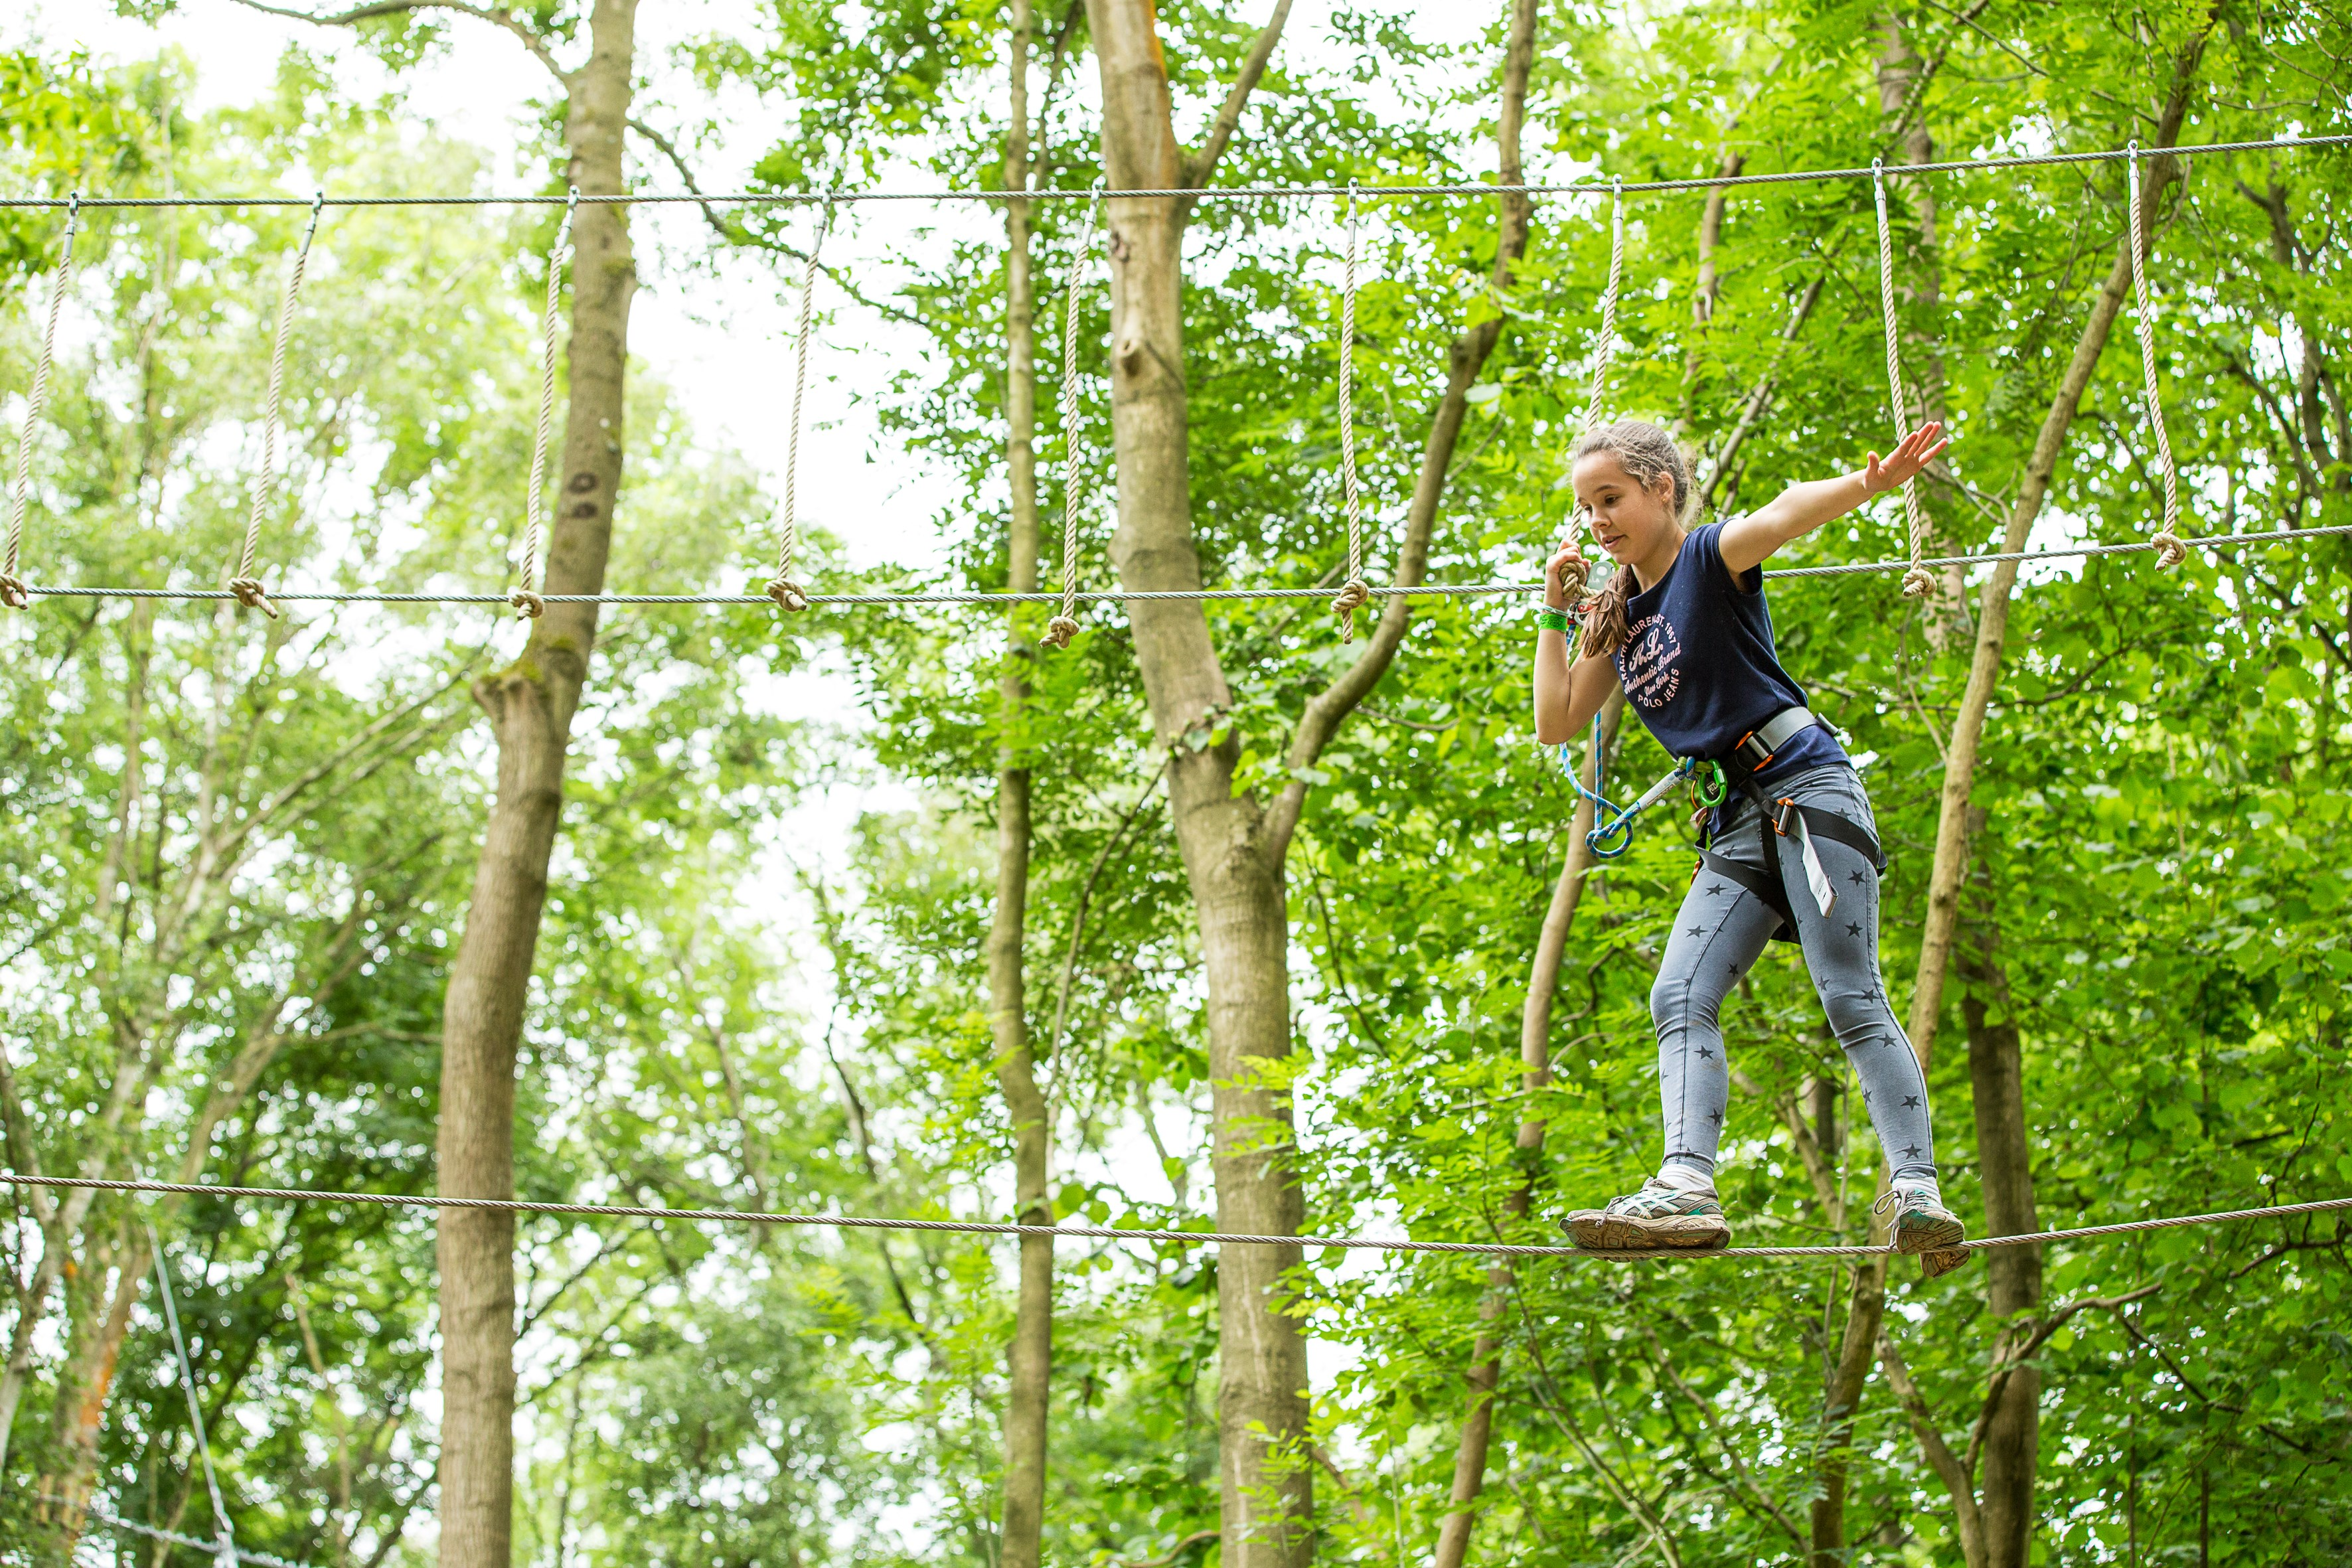 Tight Rope Walking At Brand New Go Ape At Chessington World Of Adventures Resort